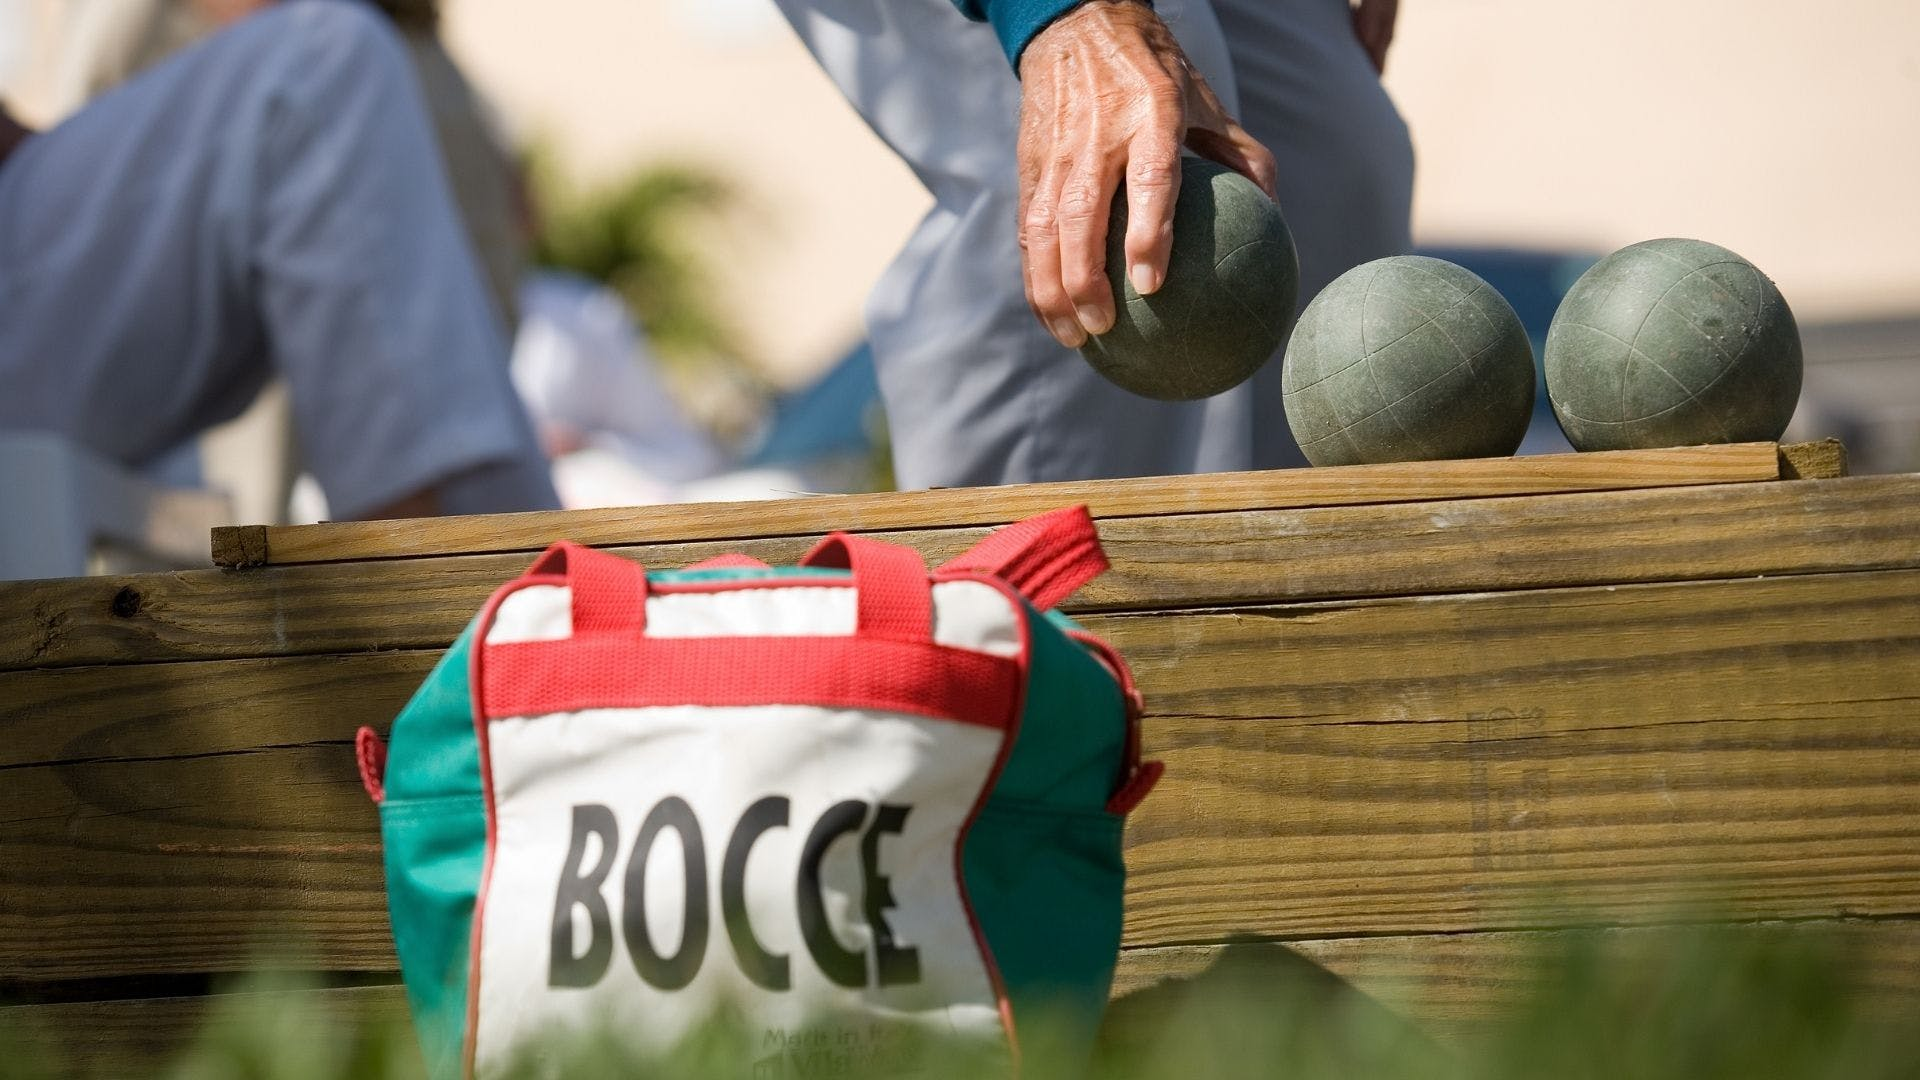 Player picking up bocce ball with a bocce bag in foreground